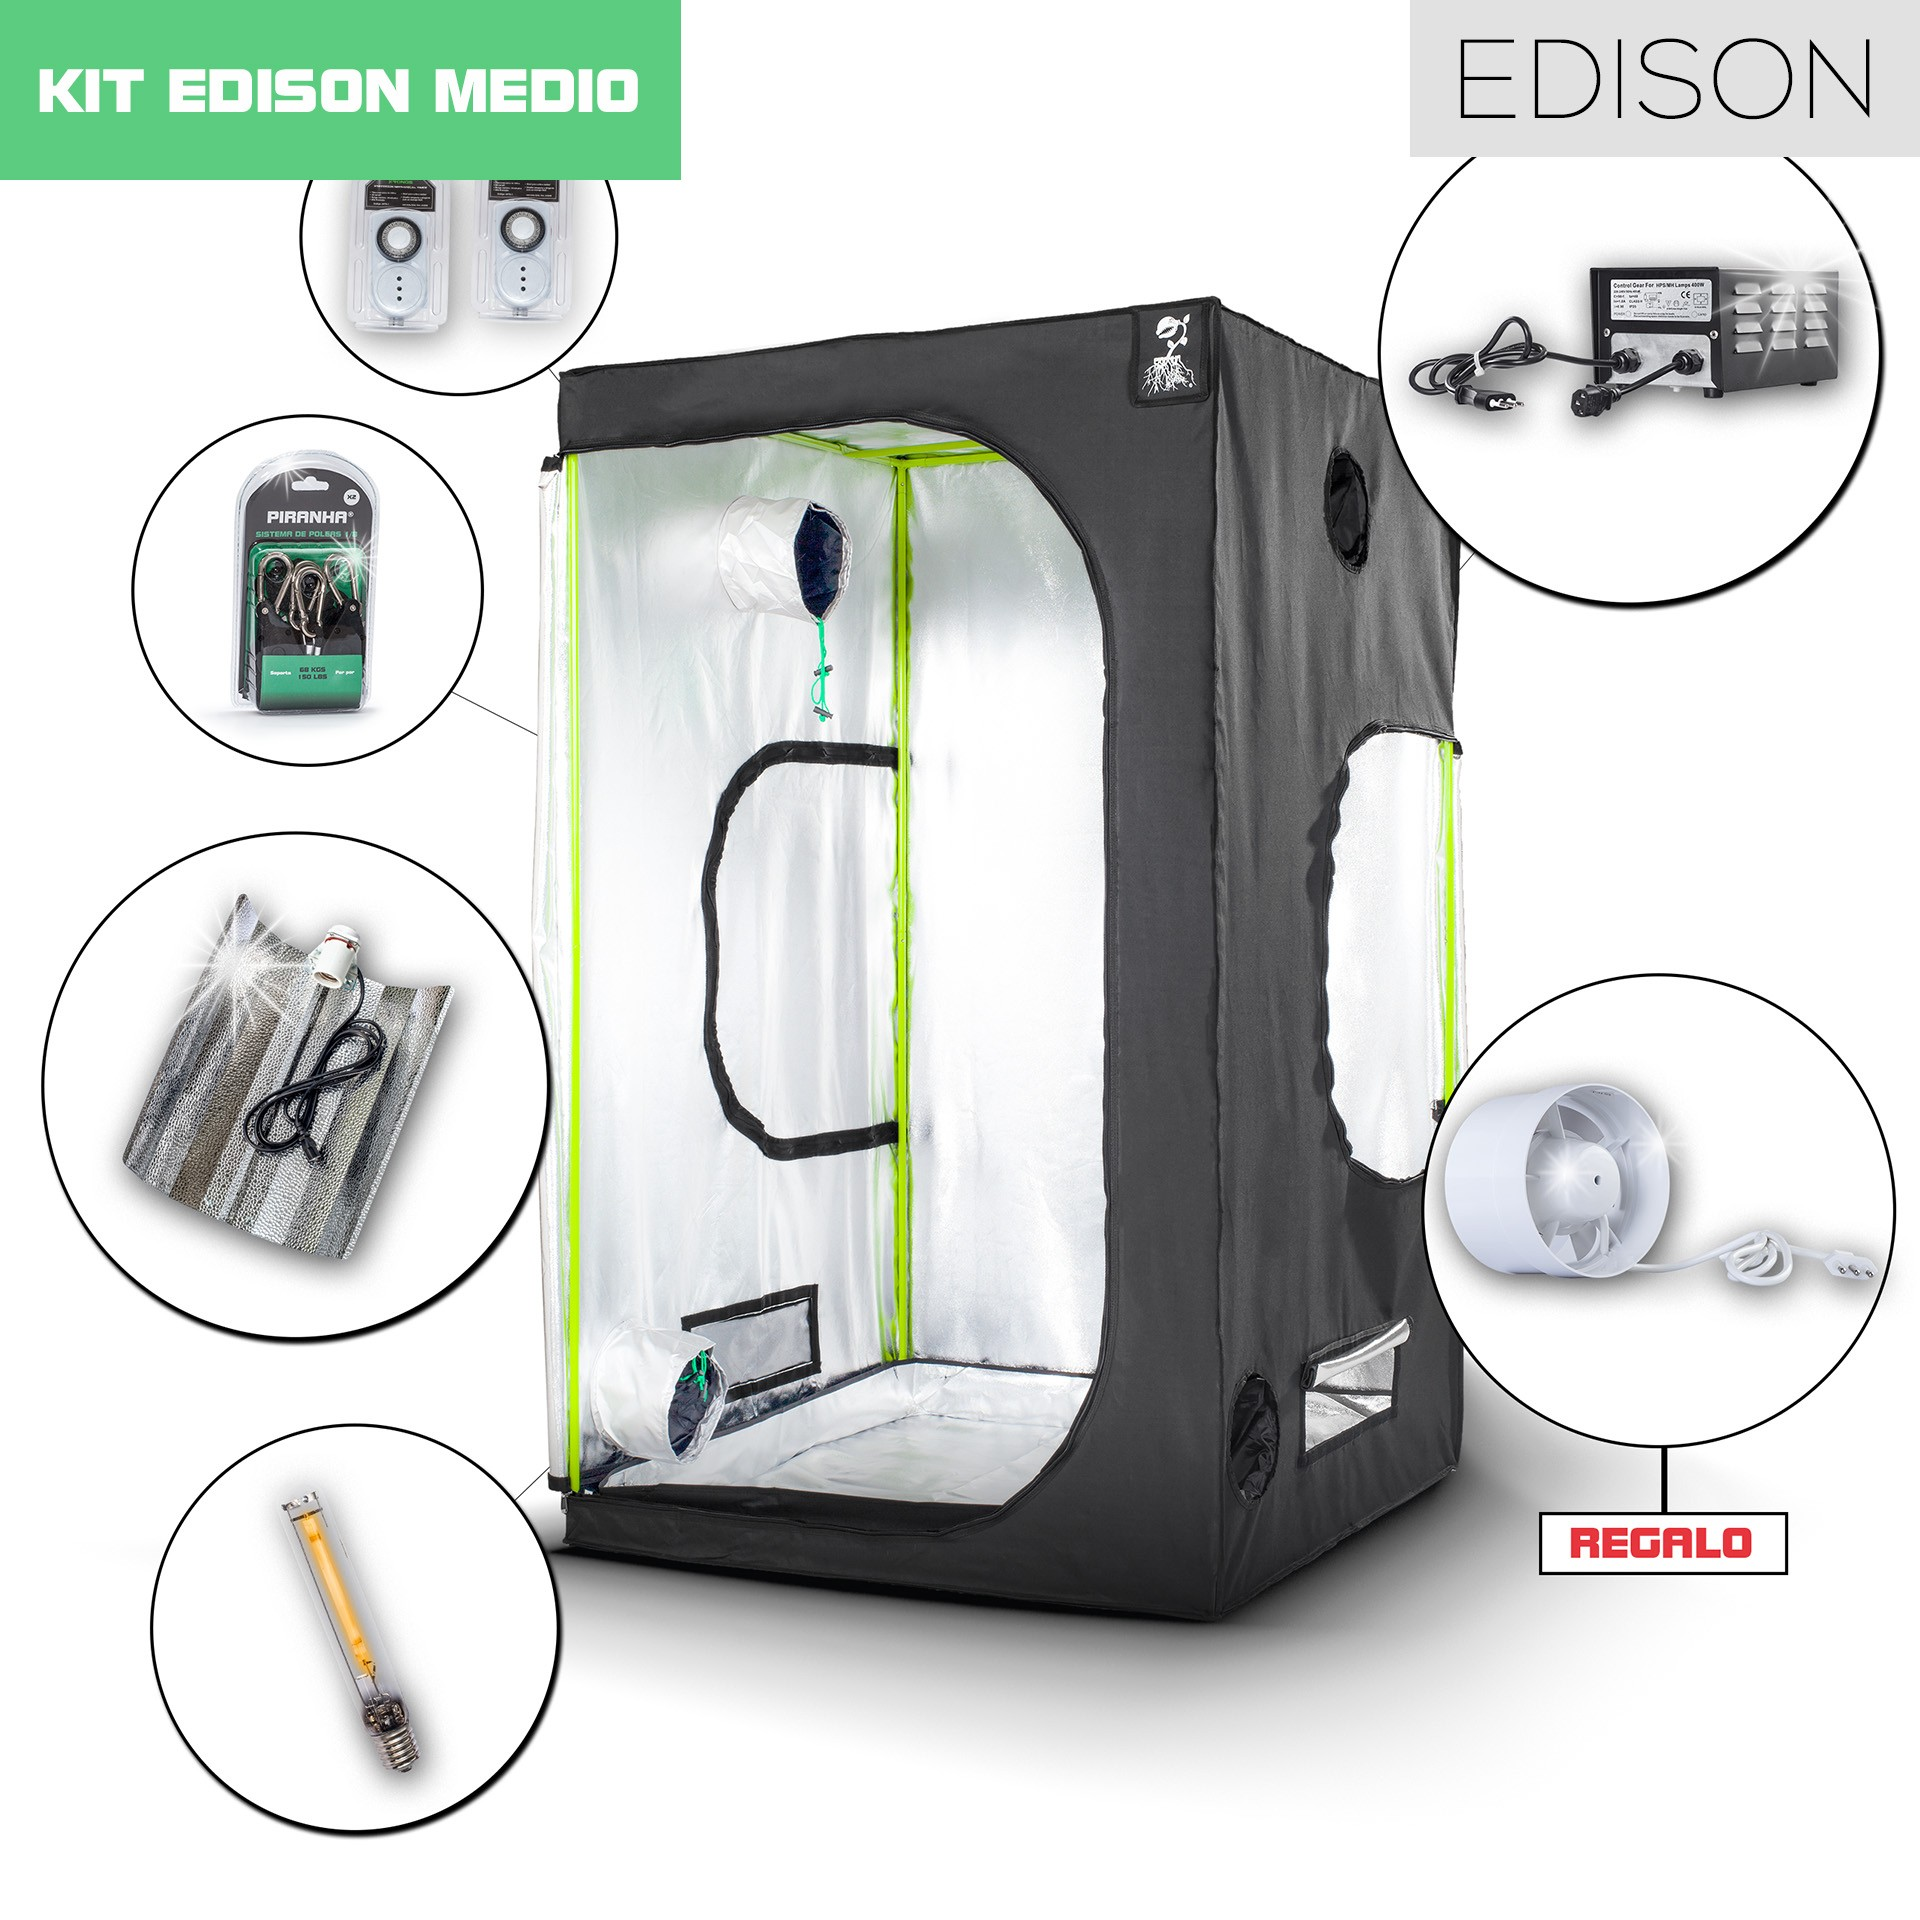 Kit Edison 120 - 600W Medio